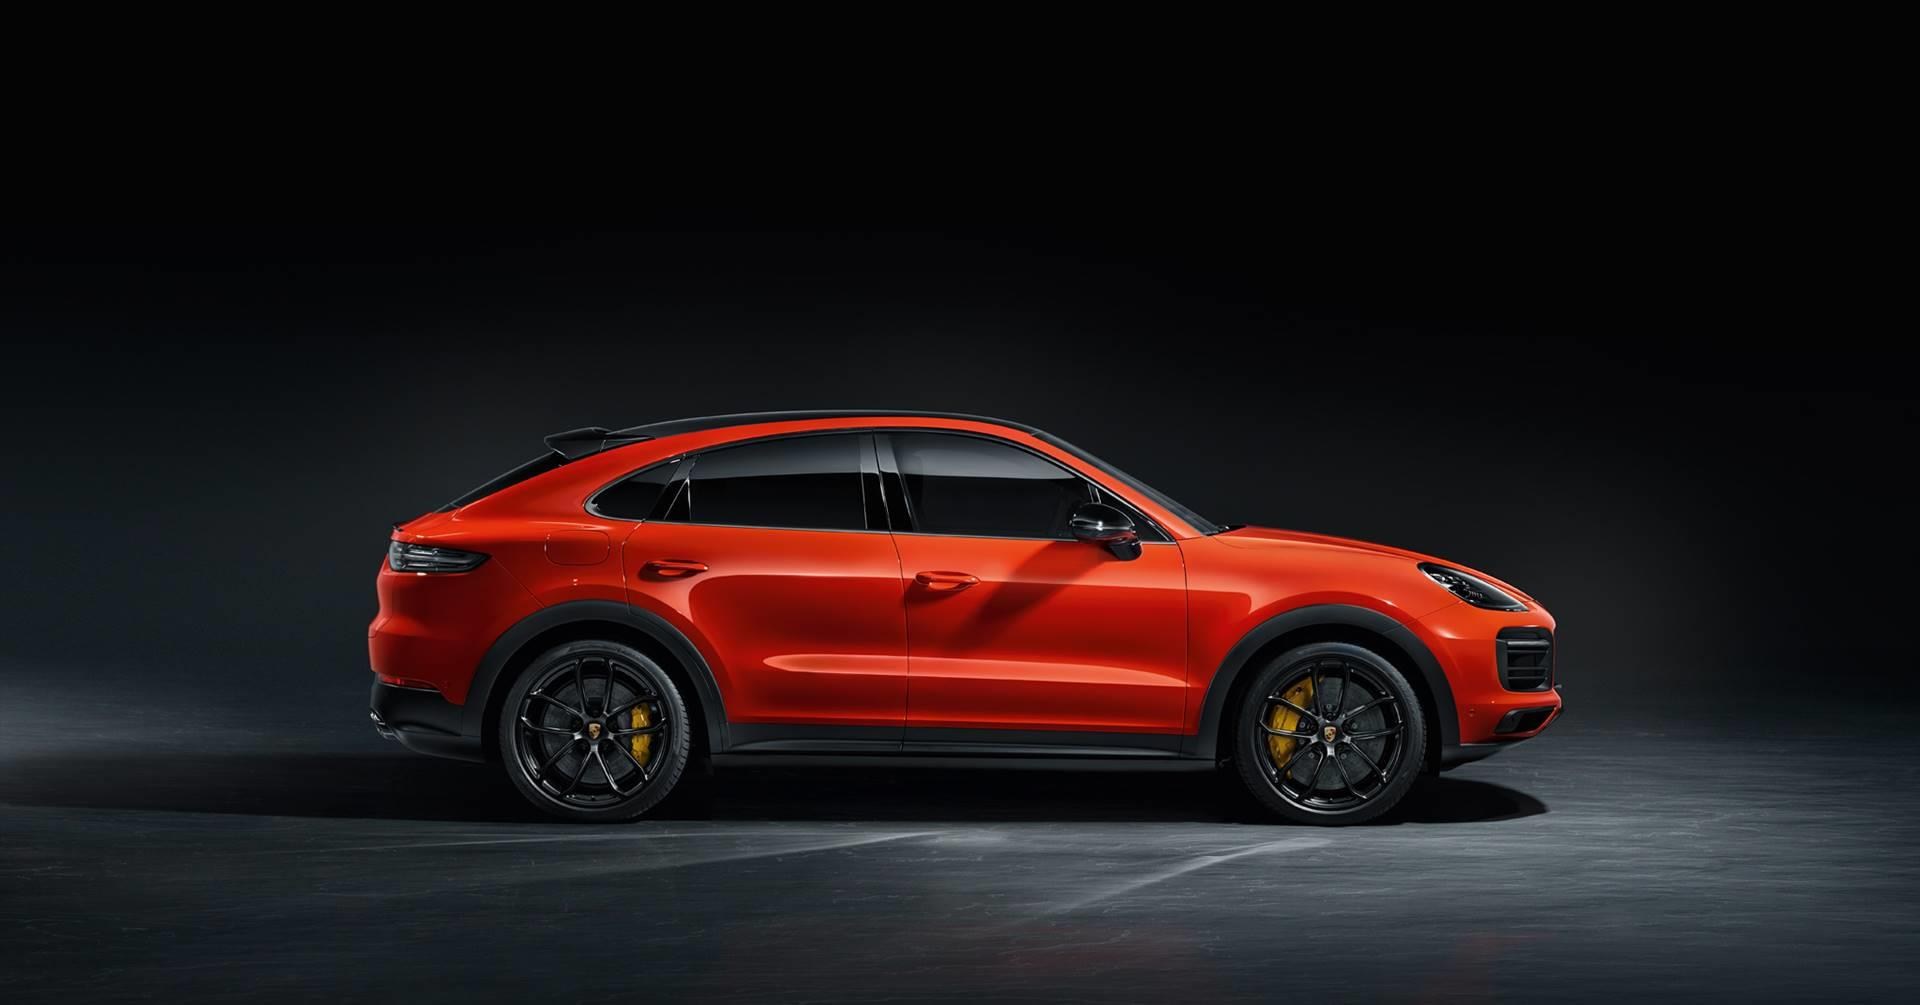 2020 Porsche Cayenne Coupe Wallpaper And Image Gallery Com